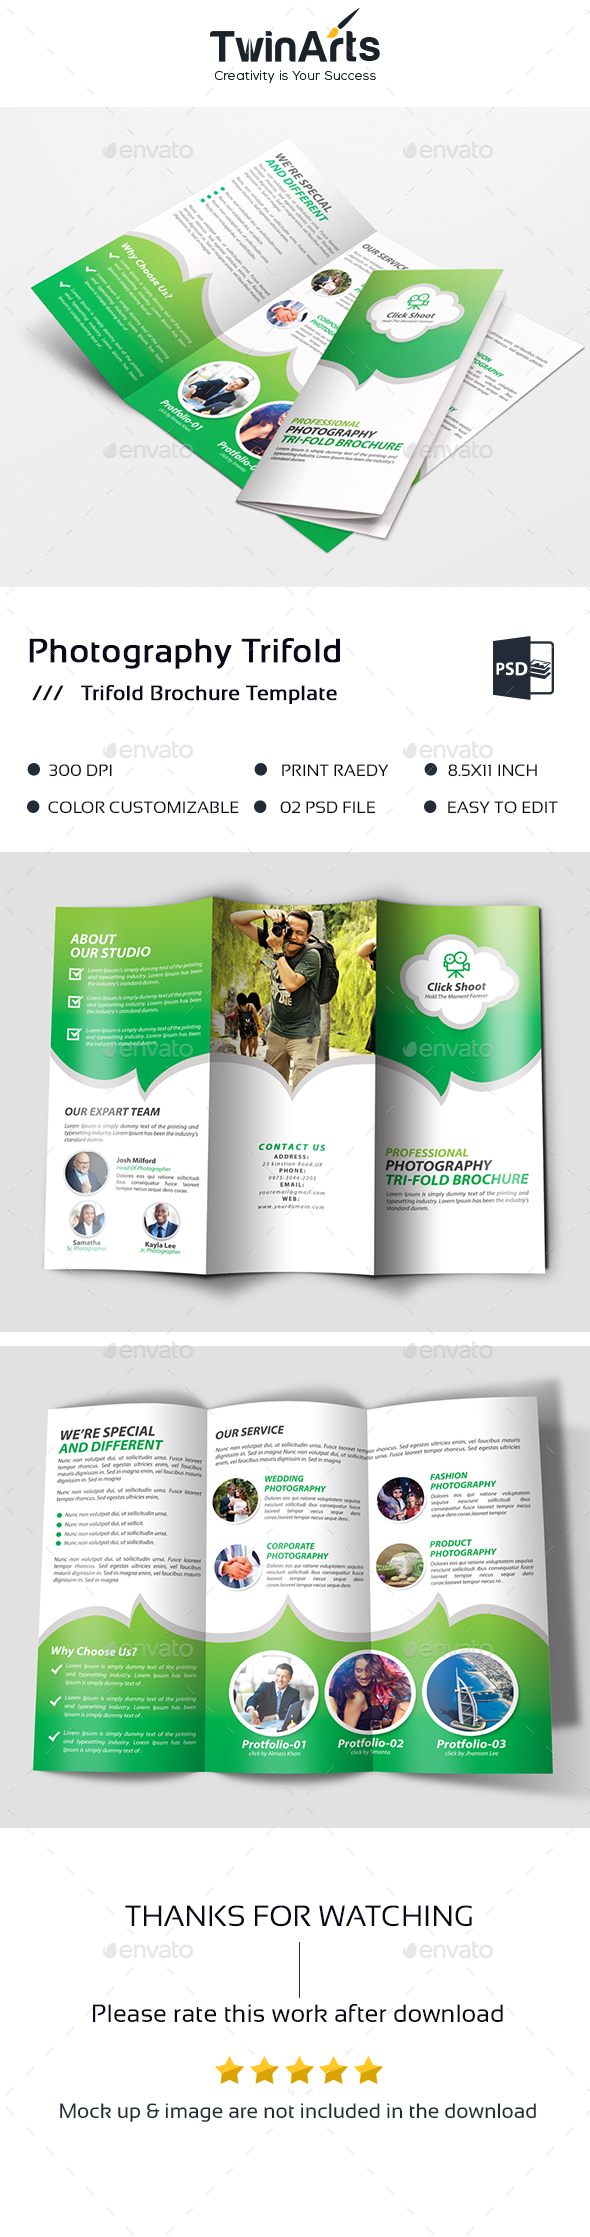 GraphicRiver Photography Trifold Brochure 20474112